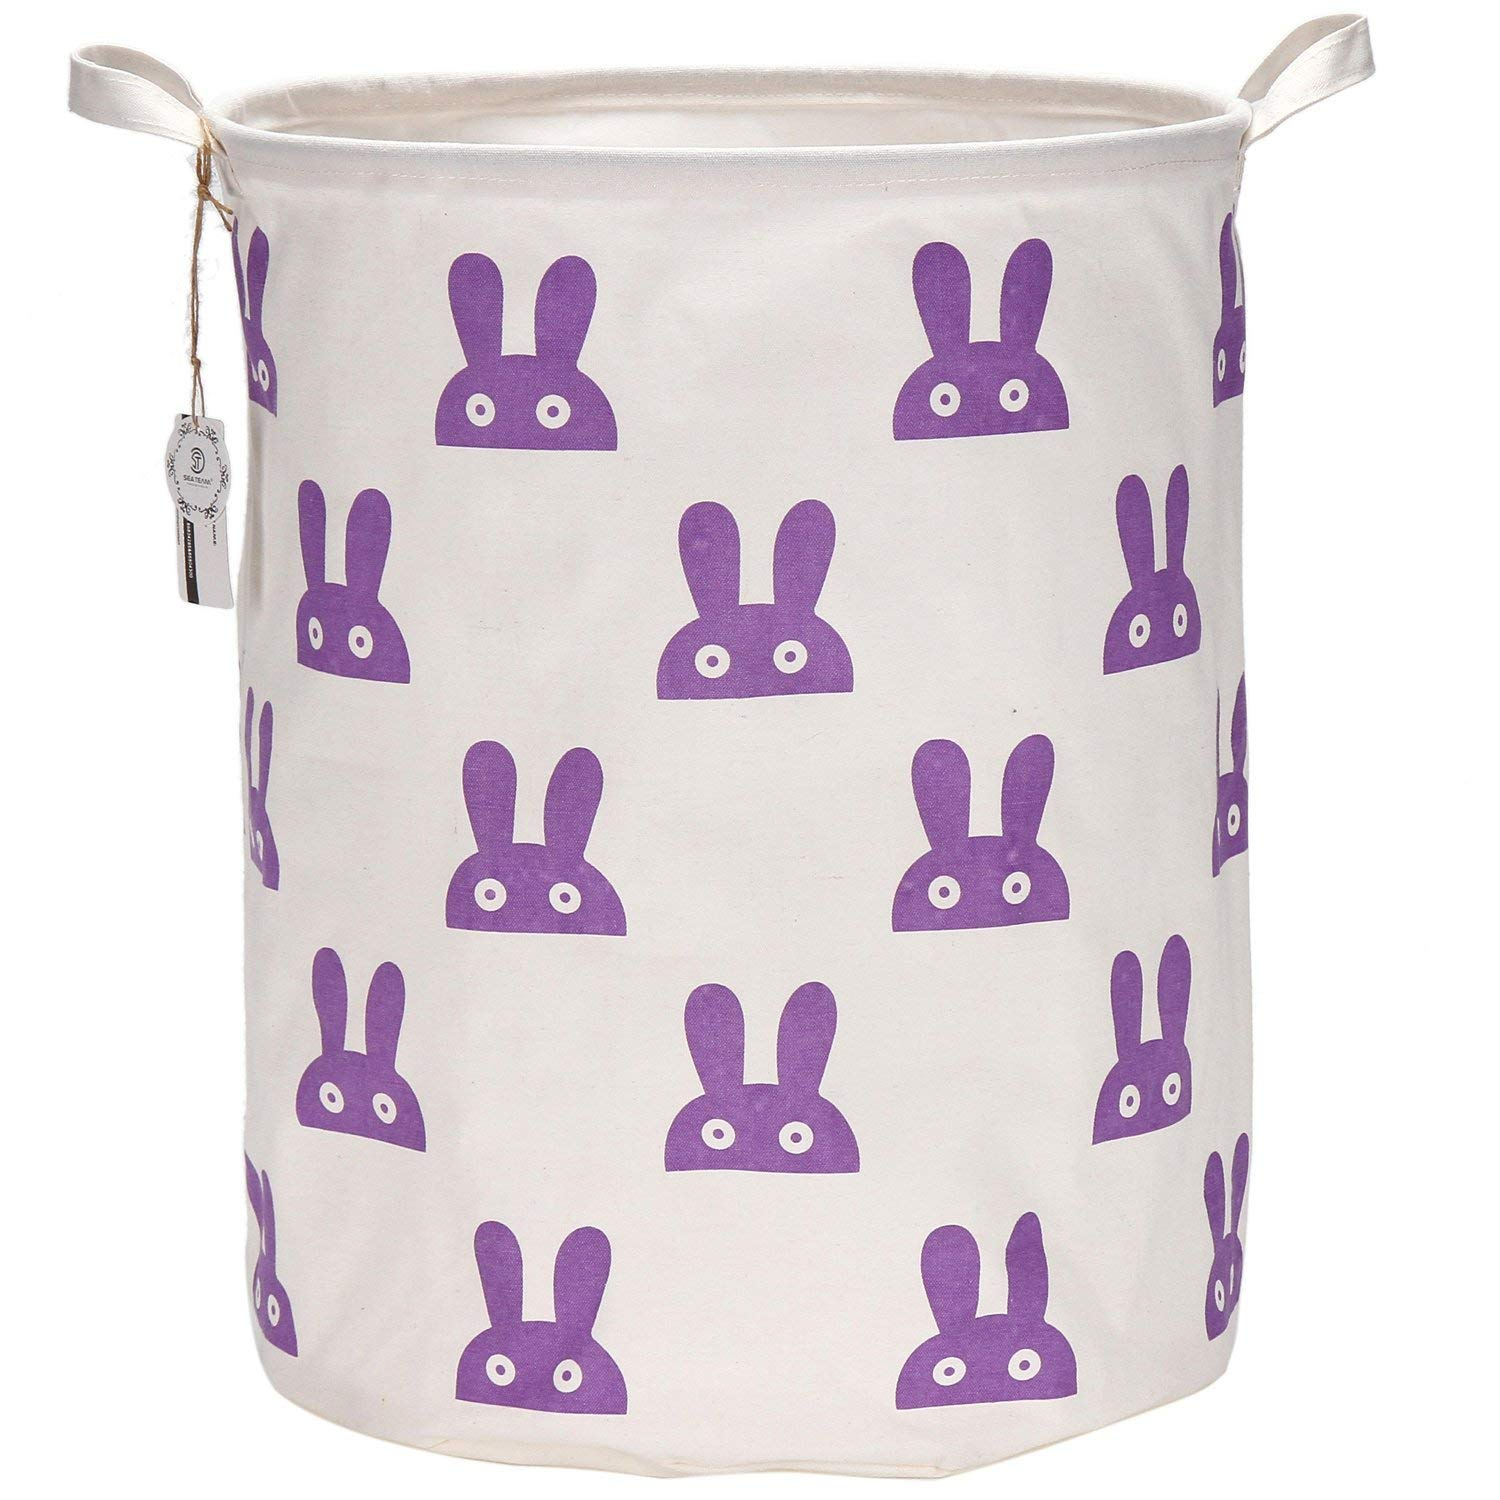 "Sea Team 19.7"" Large Sized Waterproof Coating Ramie Cotton Fabric Folding Laundry Hamper Bucket Cylindric Burlap Canvas Storage Basket with Cute Bunny Design (Purple)"